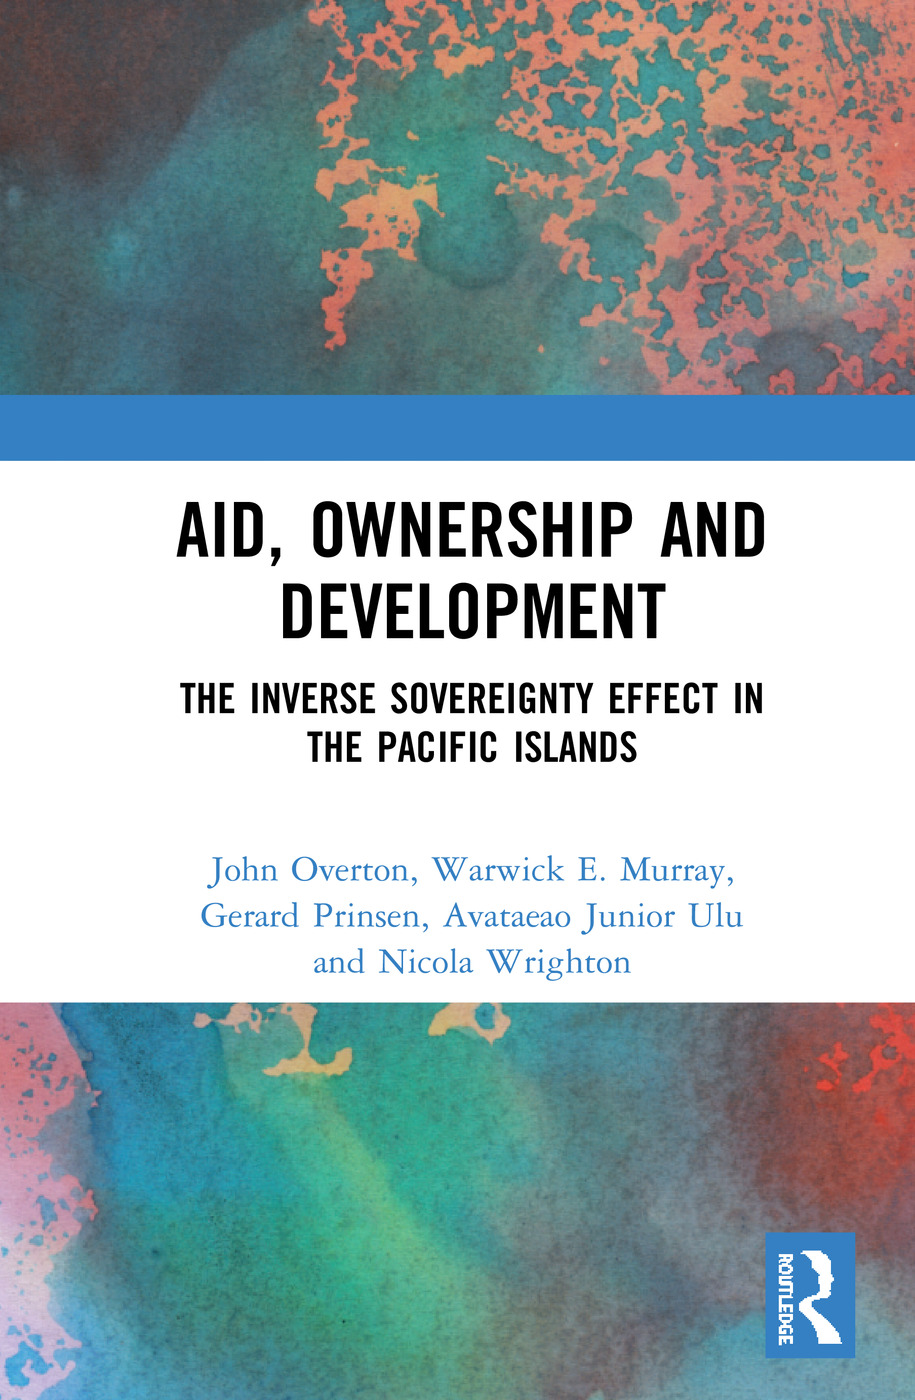 Aid, Ownership and Development: The Inverse Sovereignty Effect in the Pacific Islands book cover